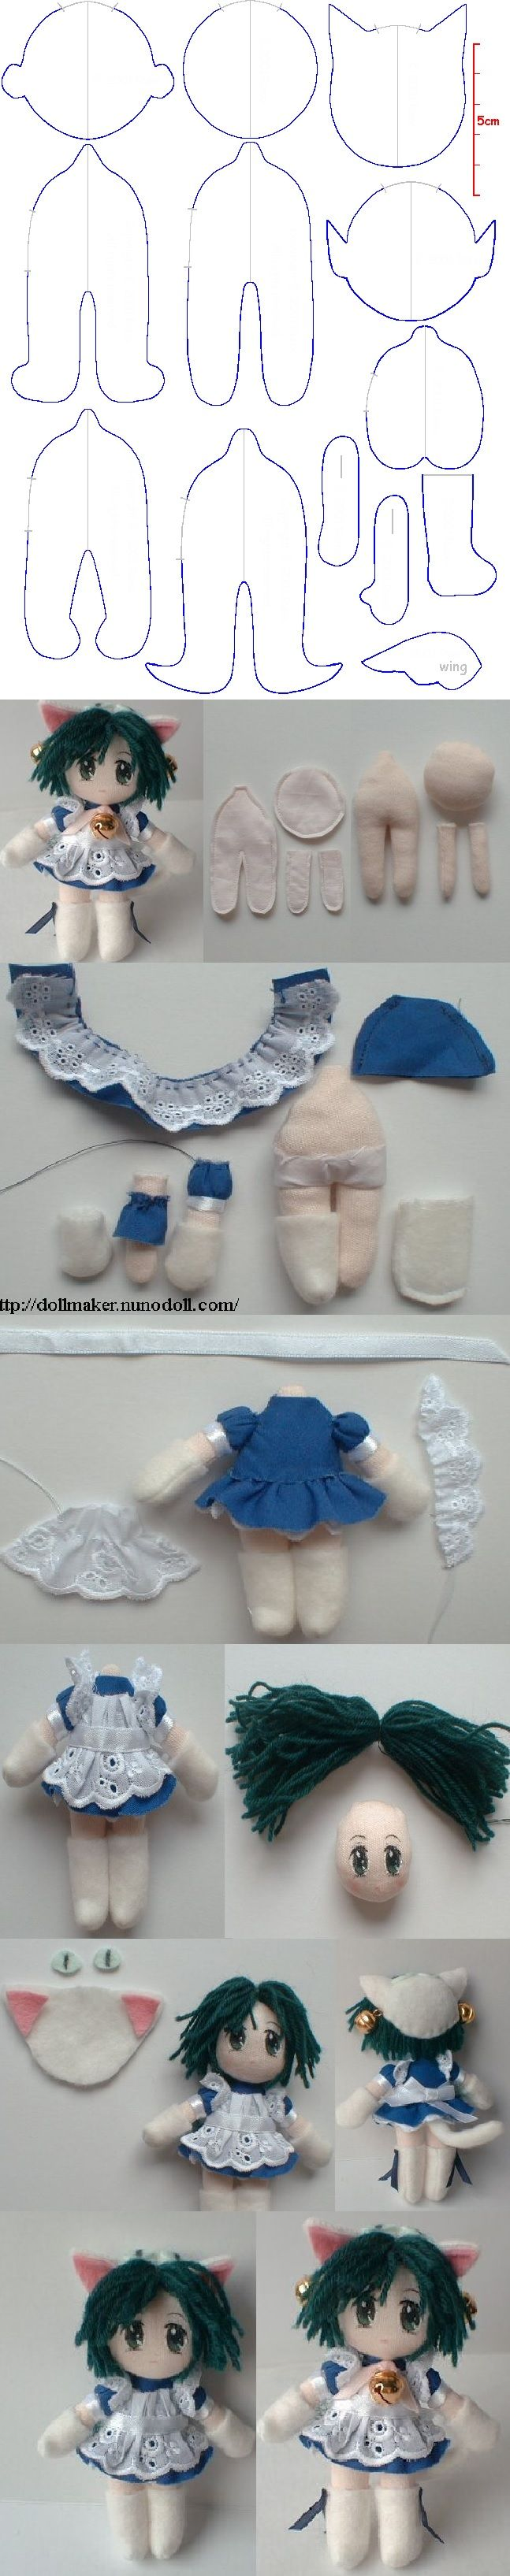 Mini doll of Di Gi Charat (Princess Dejiko) Pattern for 4 inches…